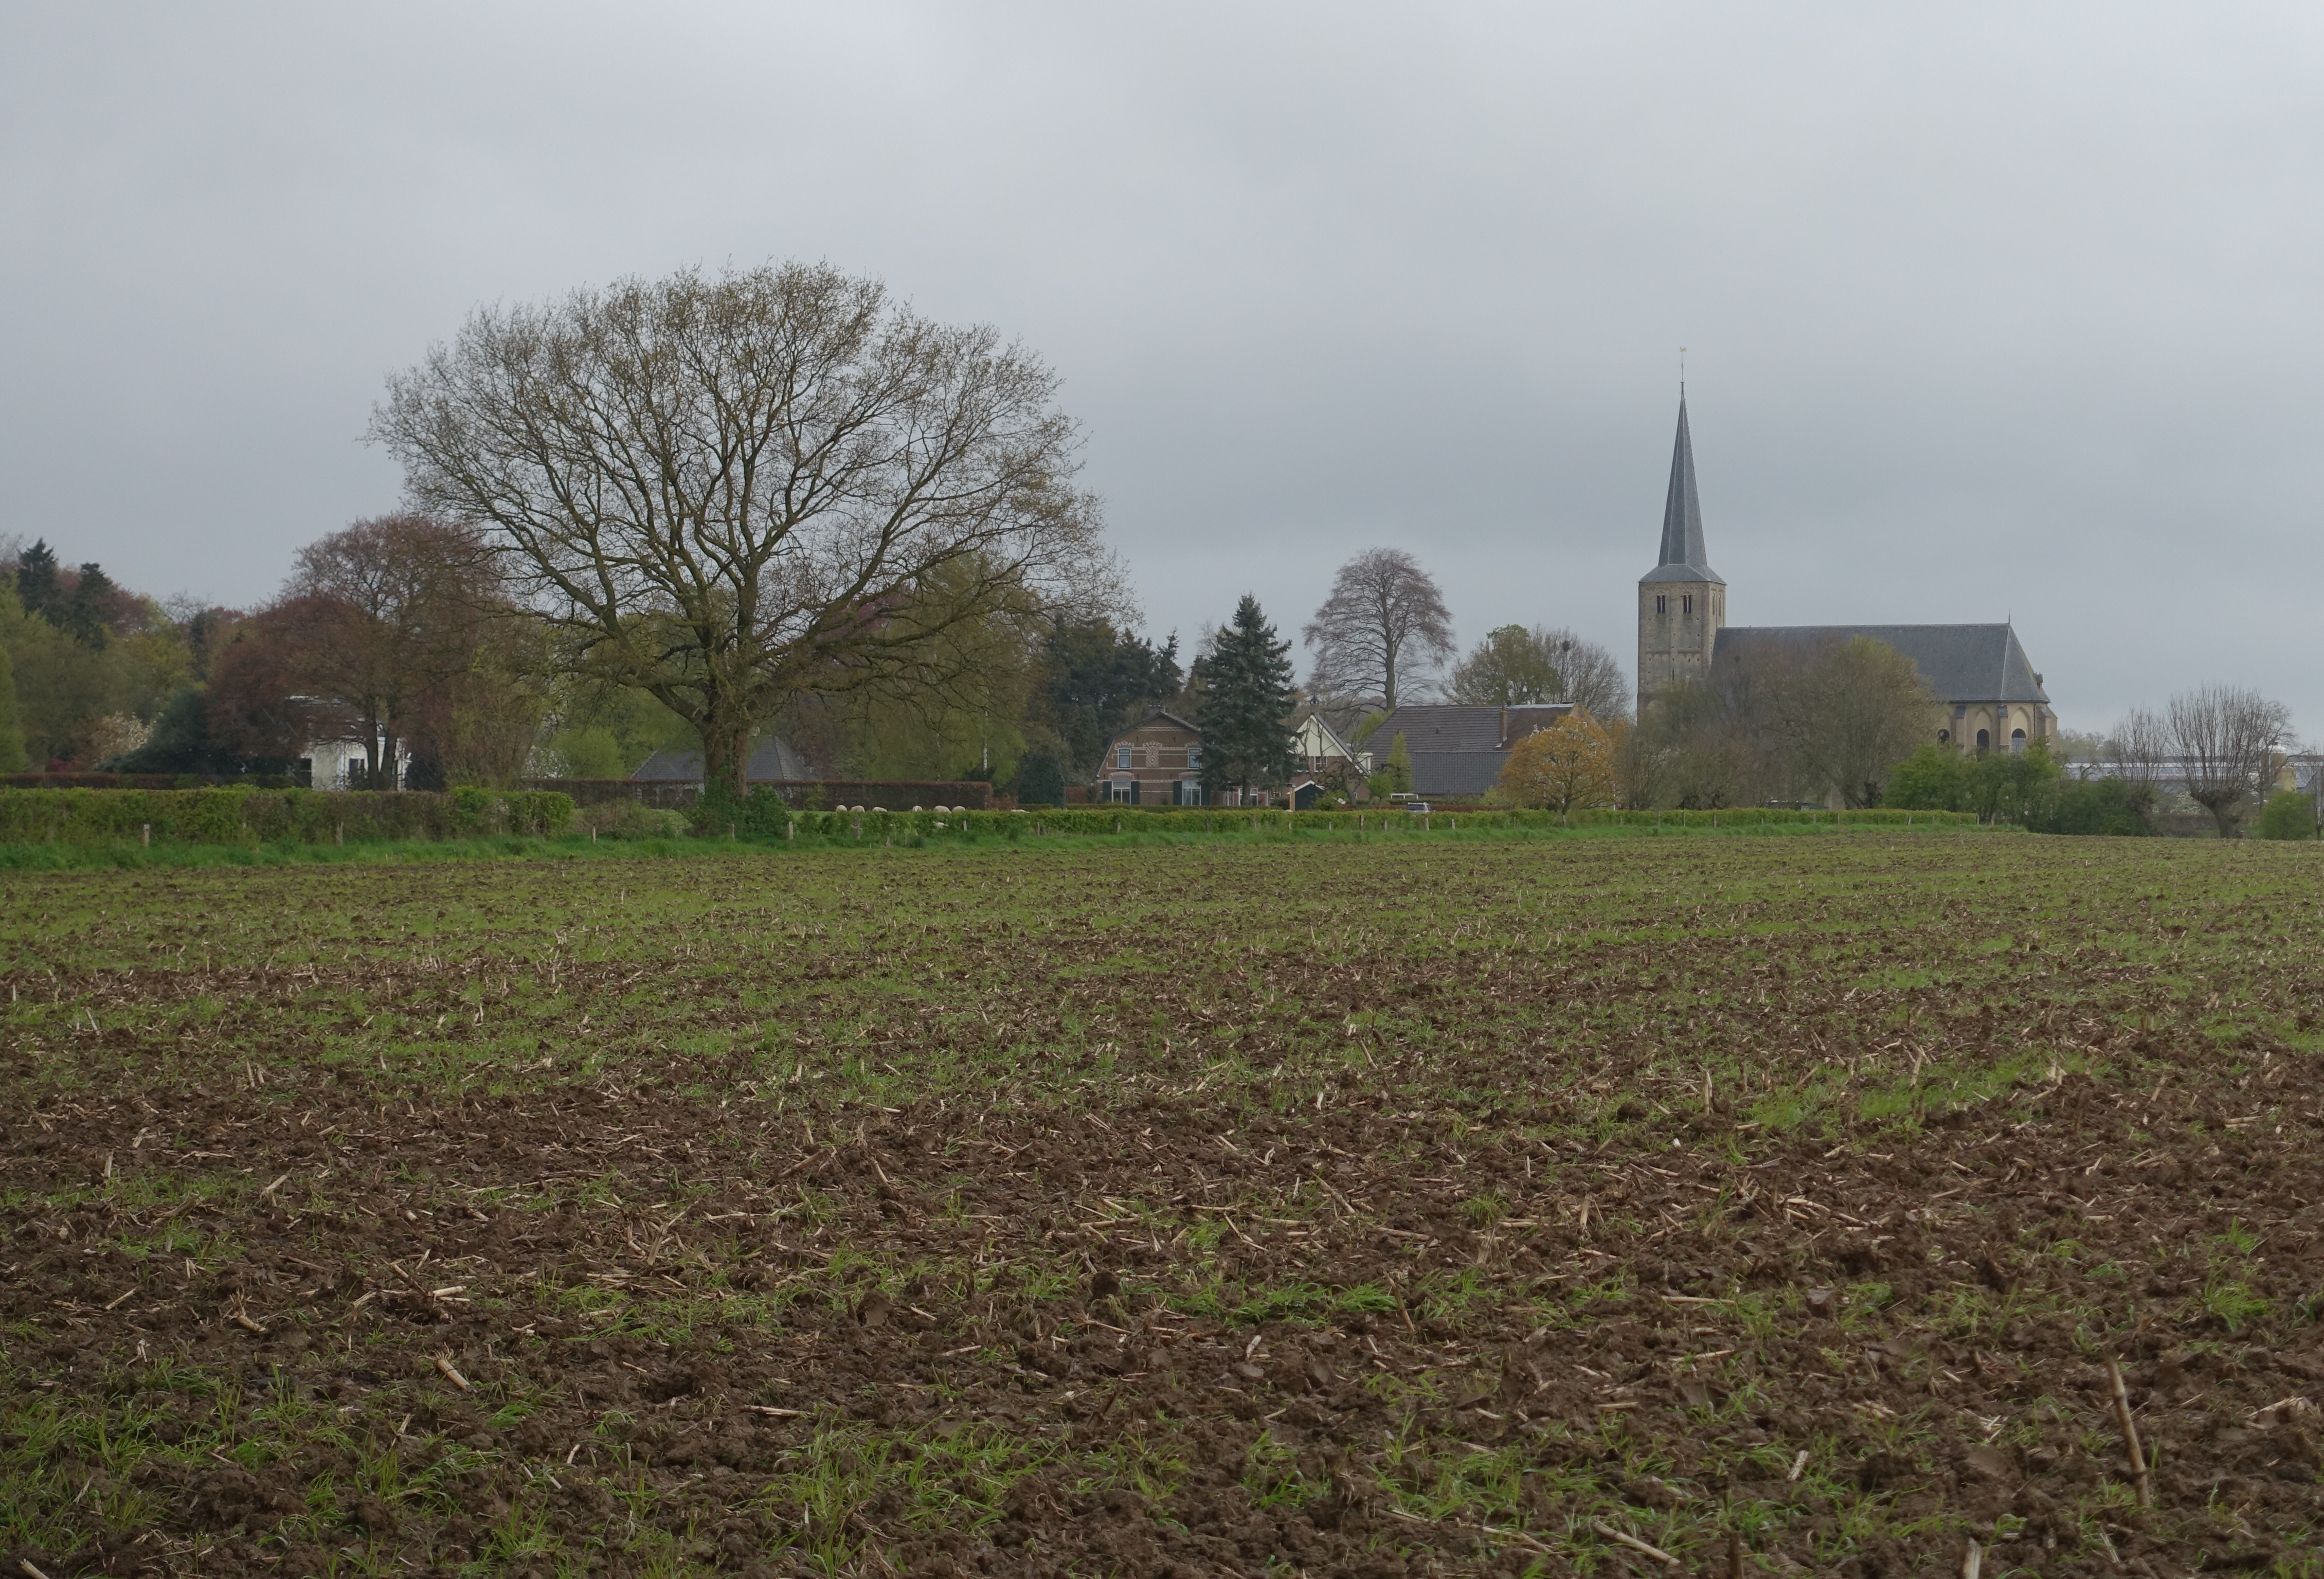 Looking back at town of Voorst